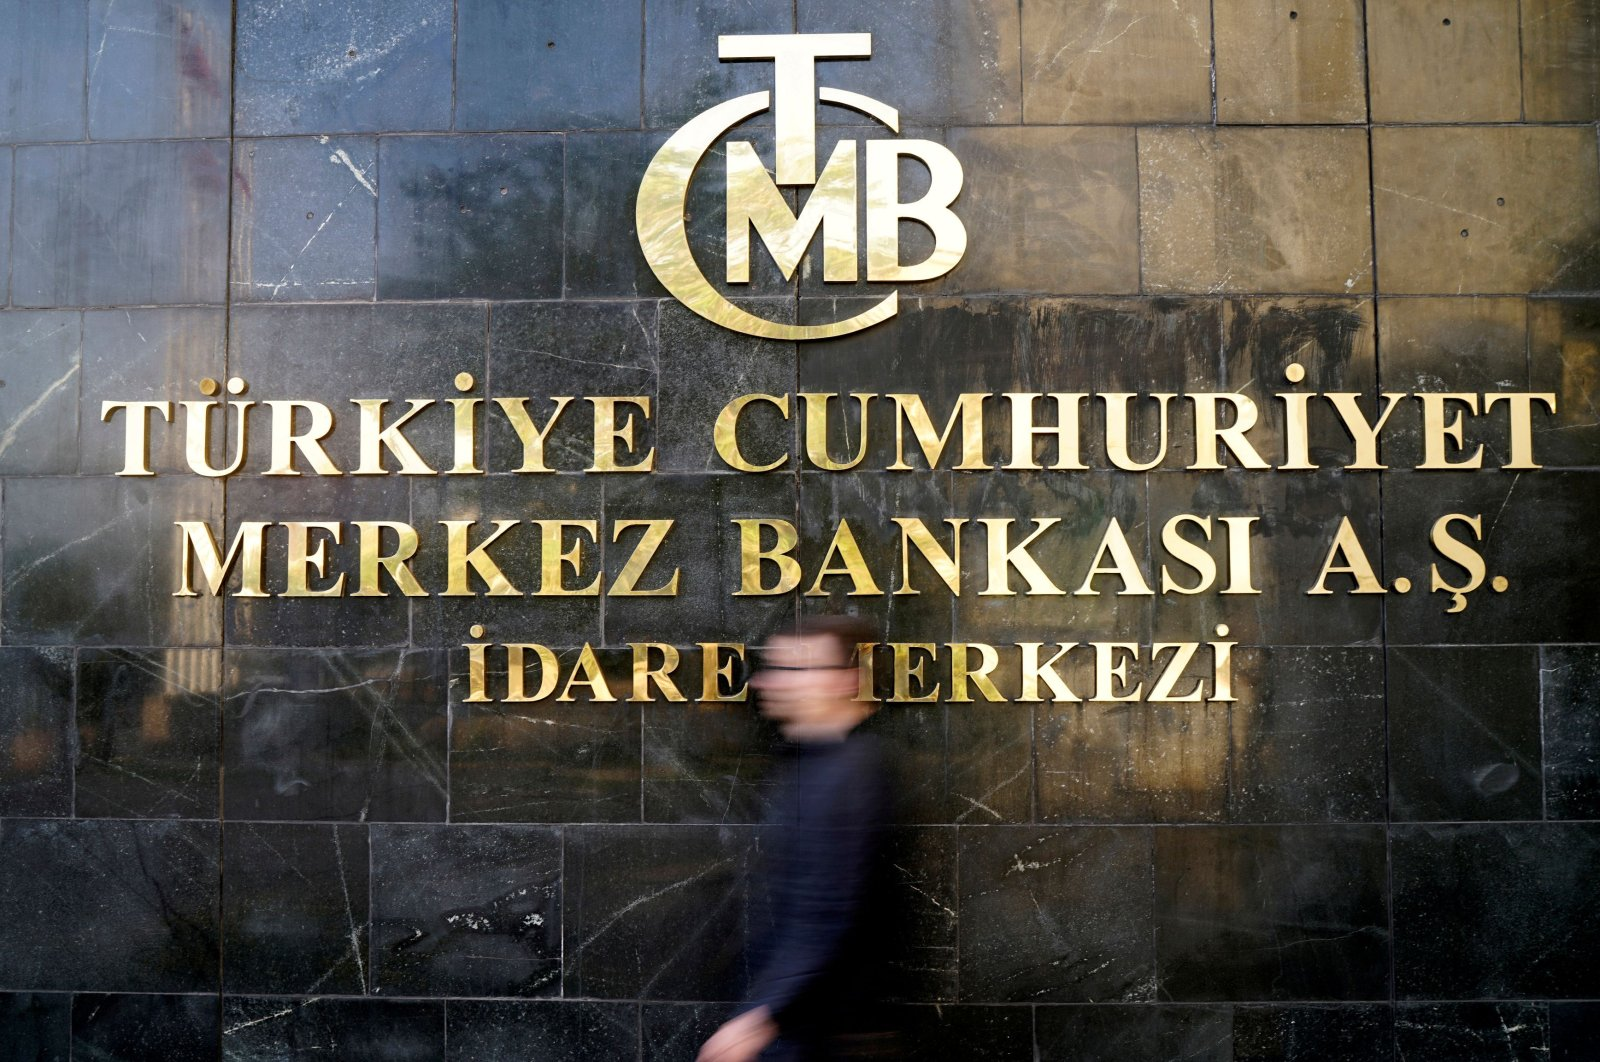 A man leaves the Central Bank of the Republic of Turkey (CBRT) headquarters in the capital Ankara, Turkey, April 19, 2015. (Reuters Photo)